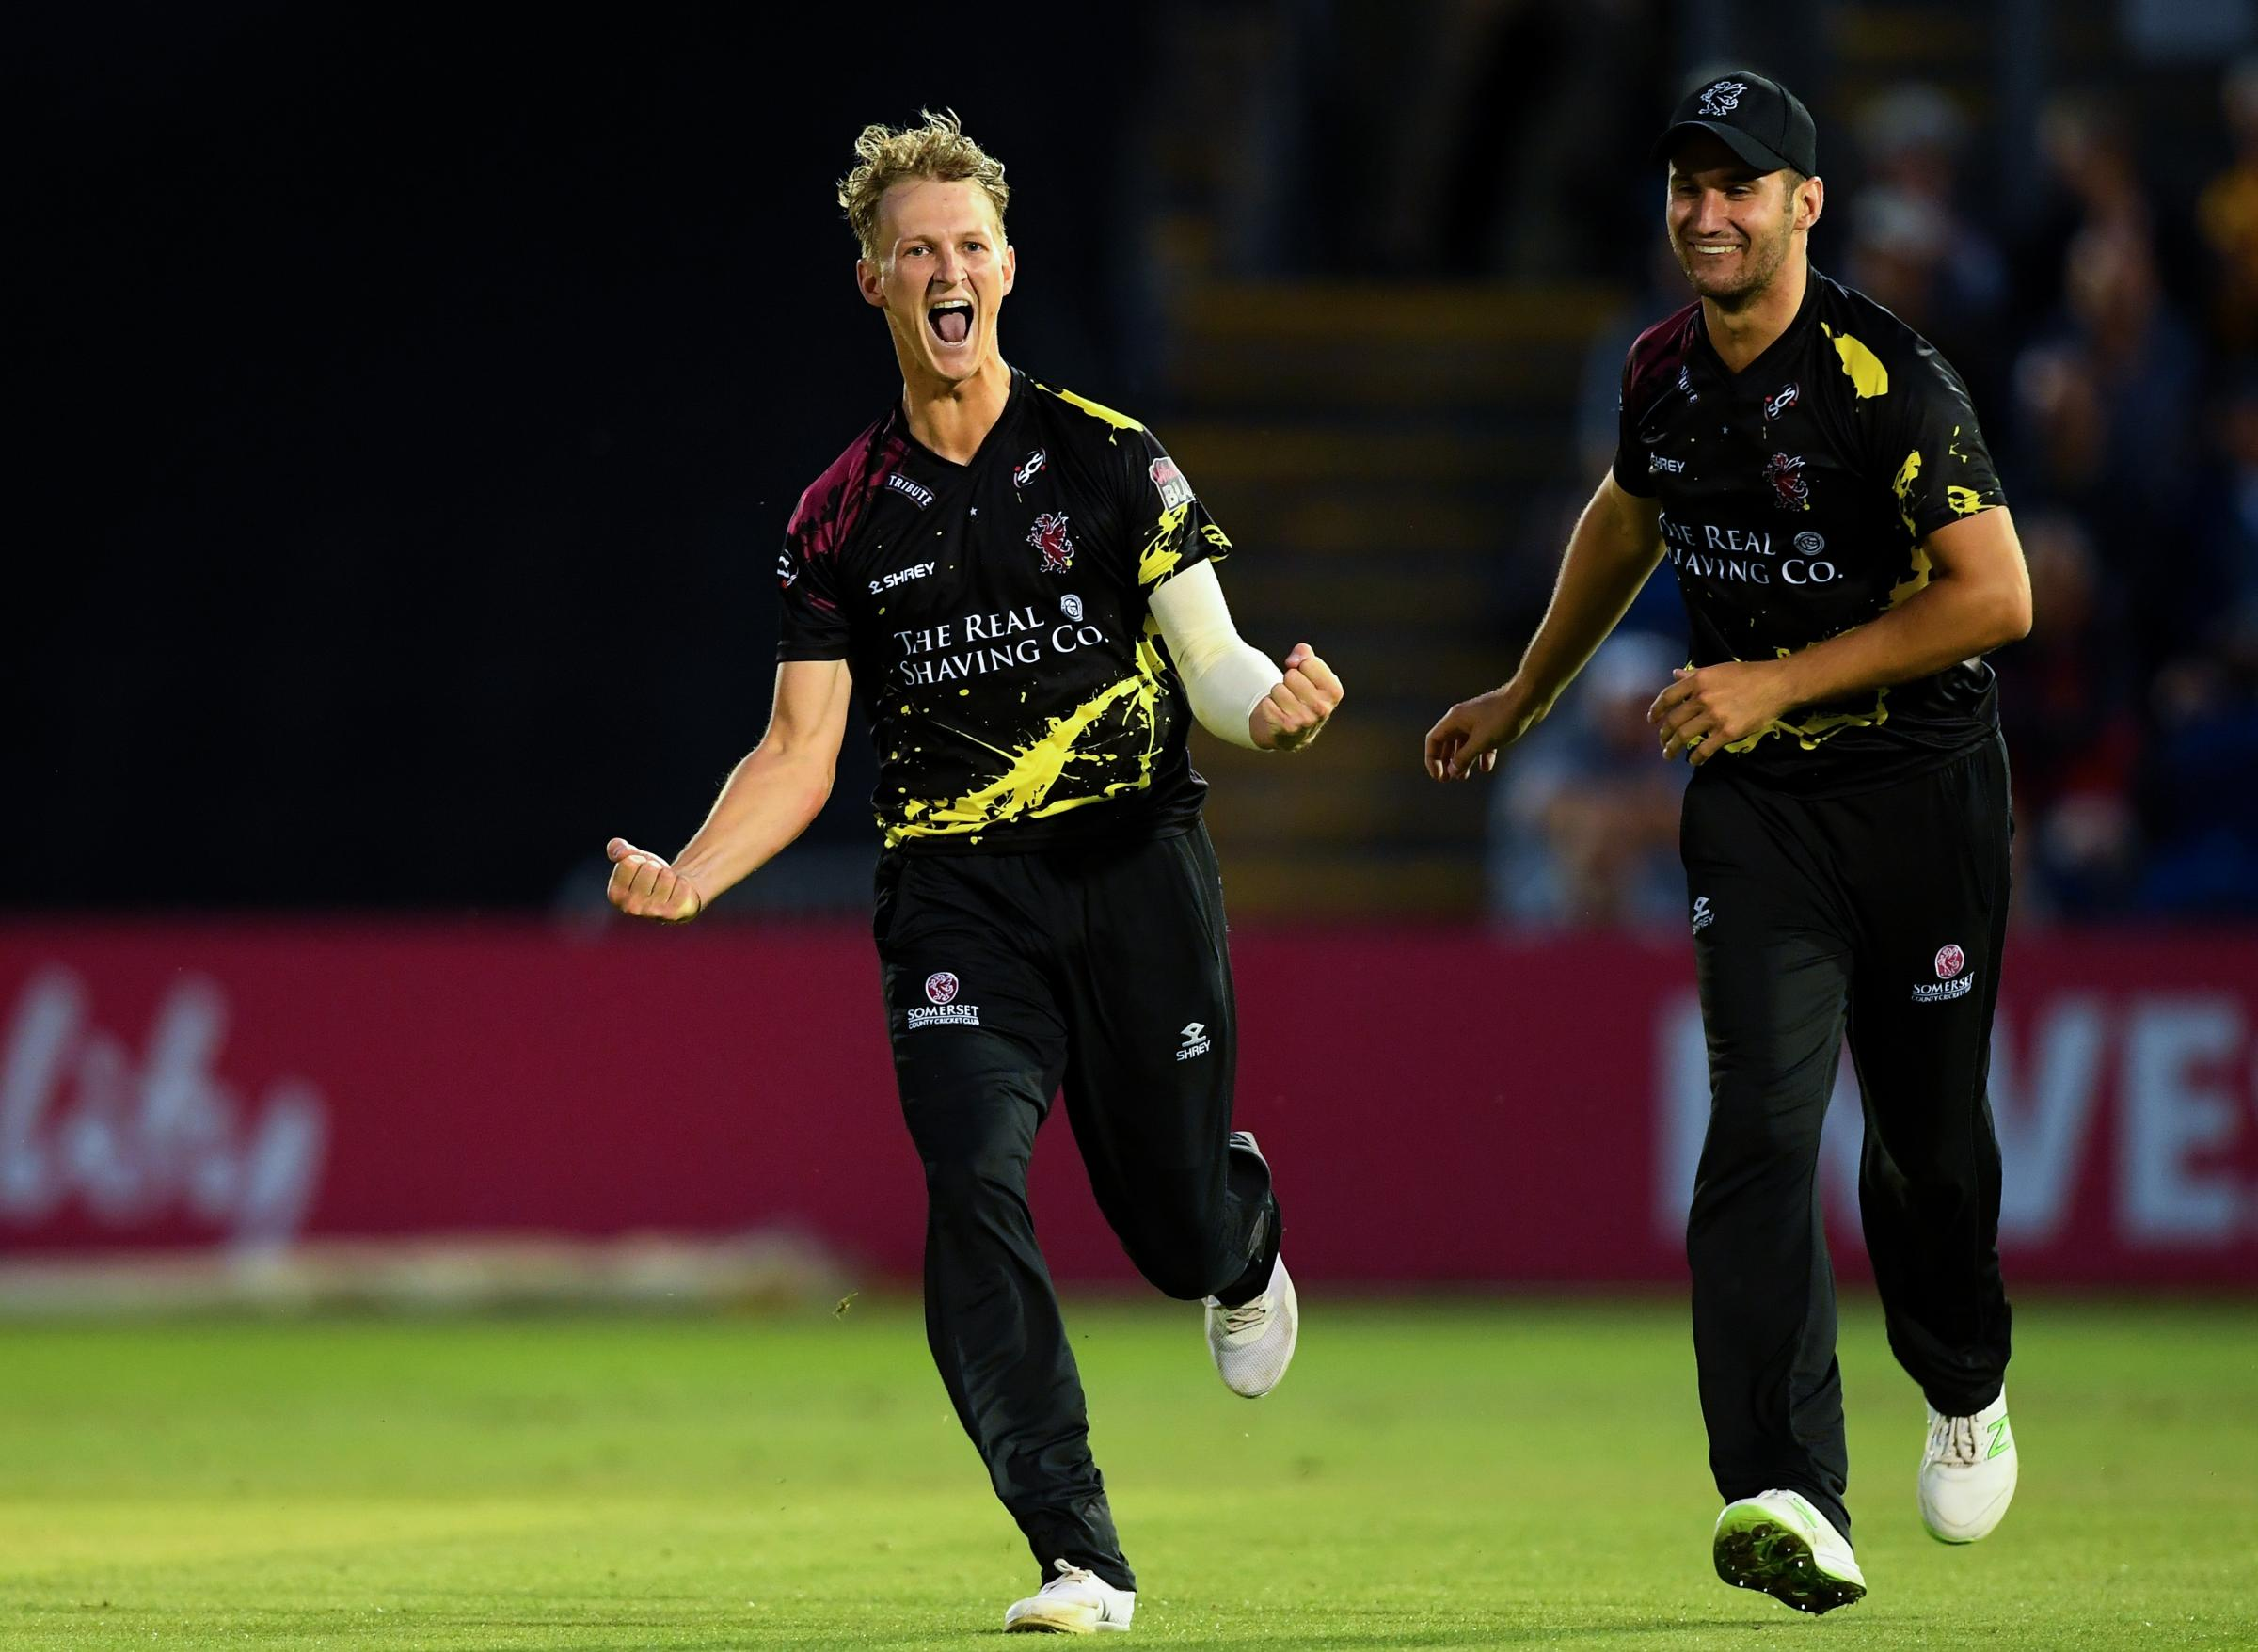 NEW DEAL: Max Waller will remain a part of Somerset's T20 side for at least the next two years. Pic: Alex Davidson/SCCC